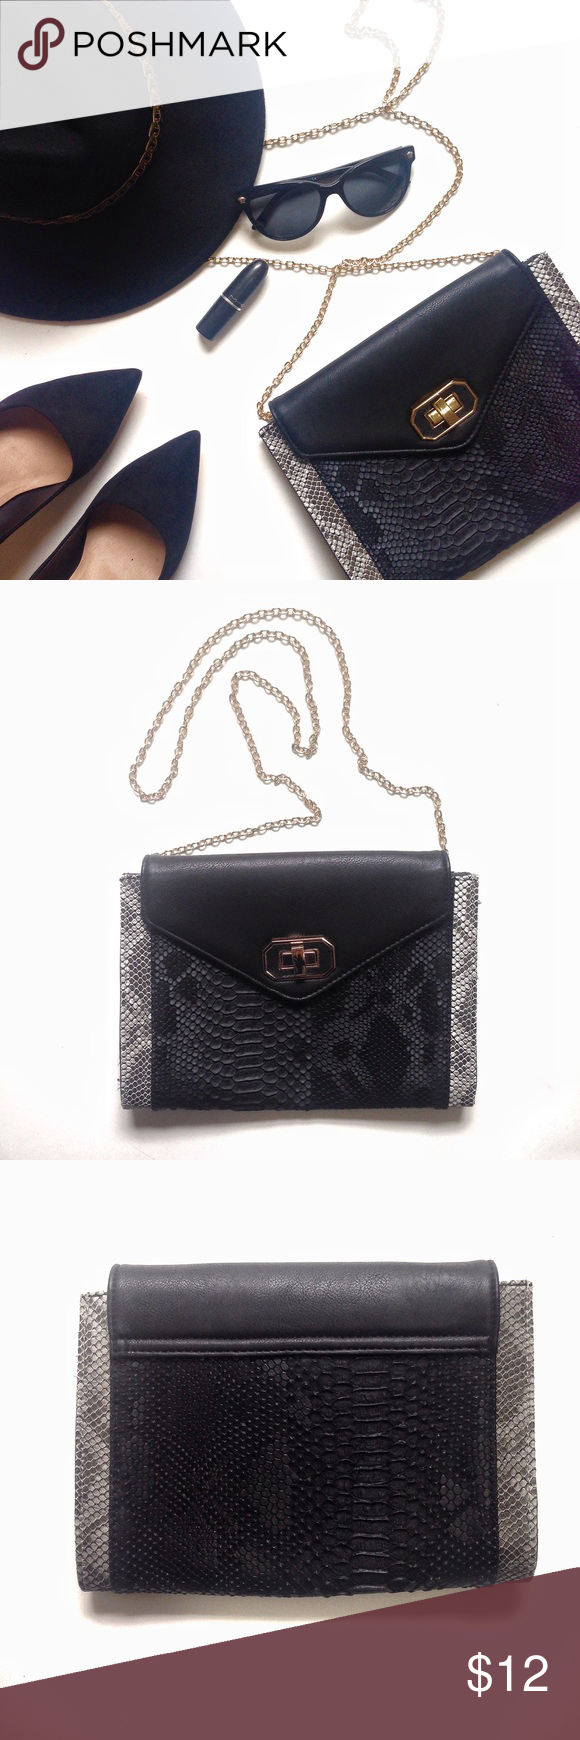 Snake Print Clutch This beautiful envelope clutch comes in black faux snakeskin, twist and lock closure, detachable gold chain strap and interior zipper pocket. There is plenty of room for the essentials. Fully lined. Never worn. Lock closure has a few scratches. Bags Clutches & Wristlets